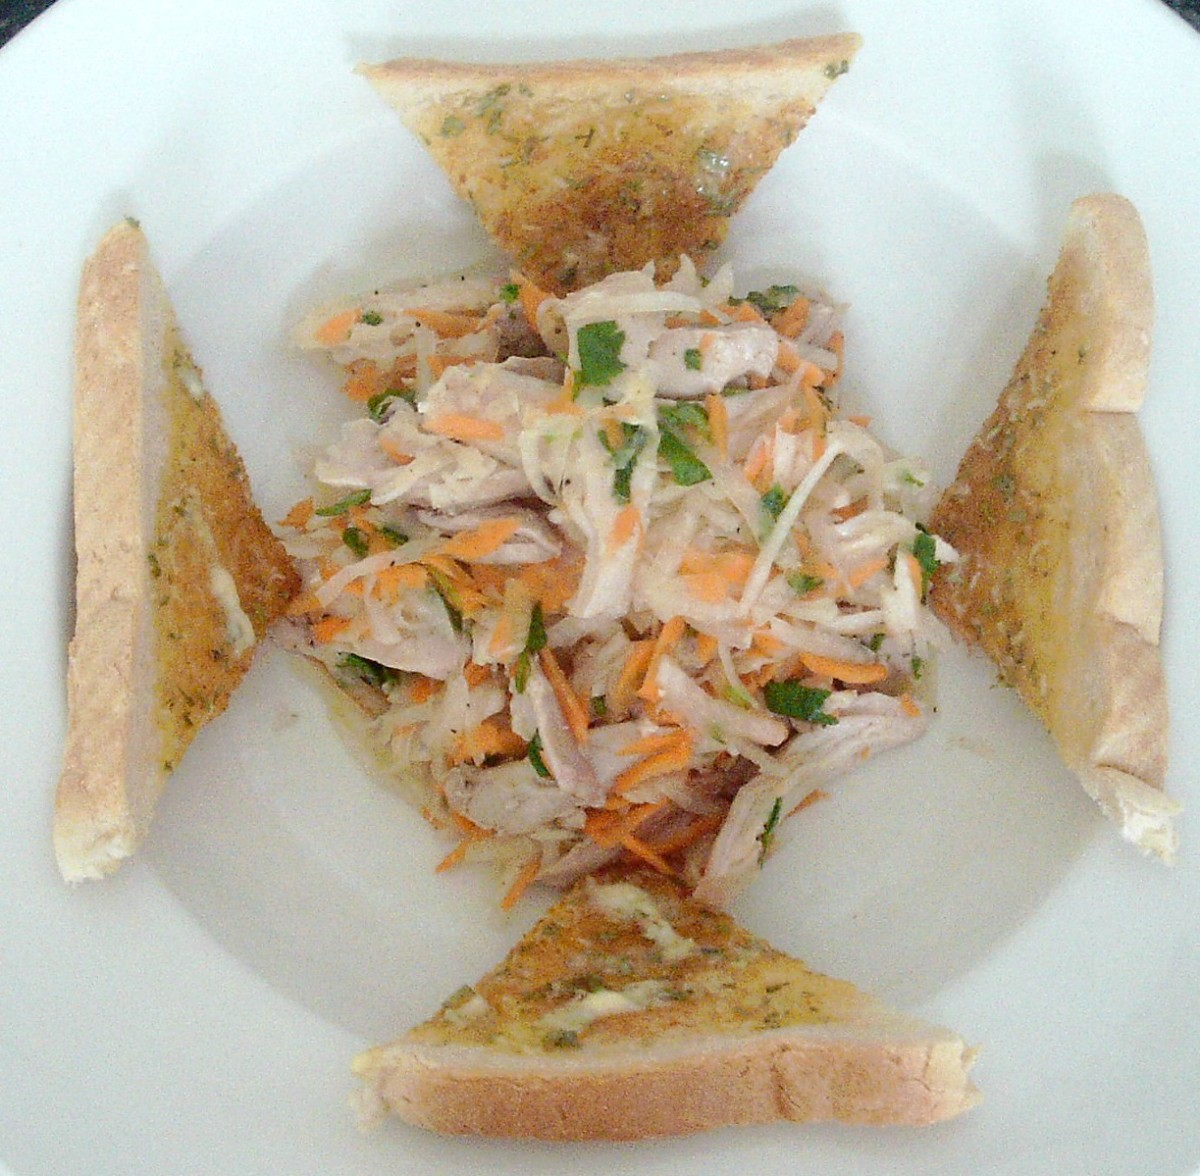 White turnip and roast chicken salad with garlic and tarragon toast